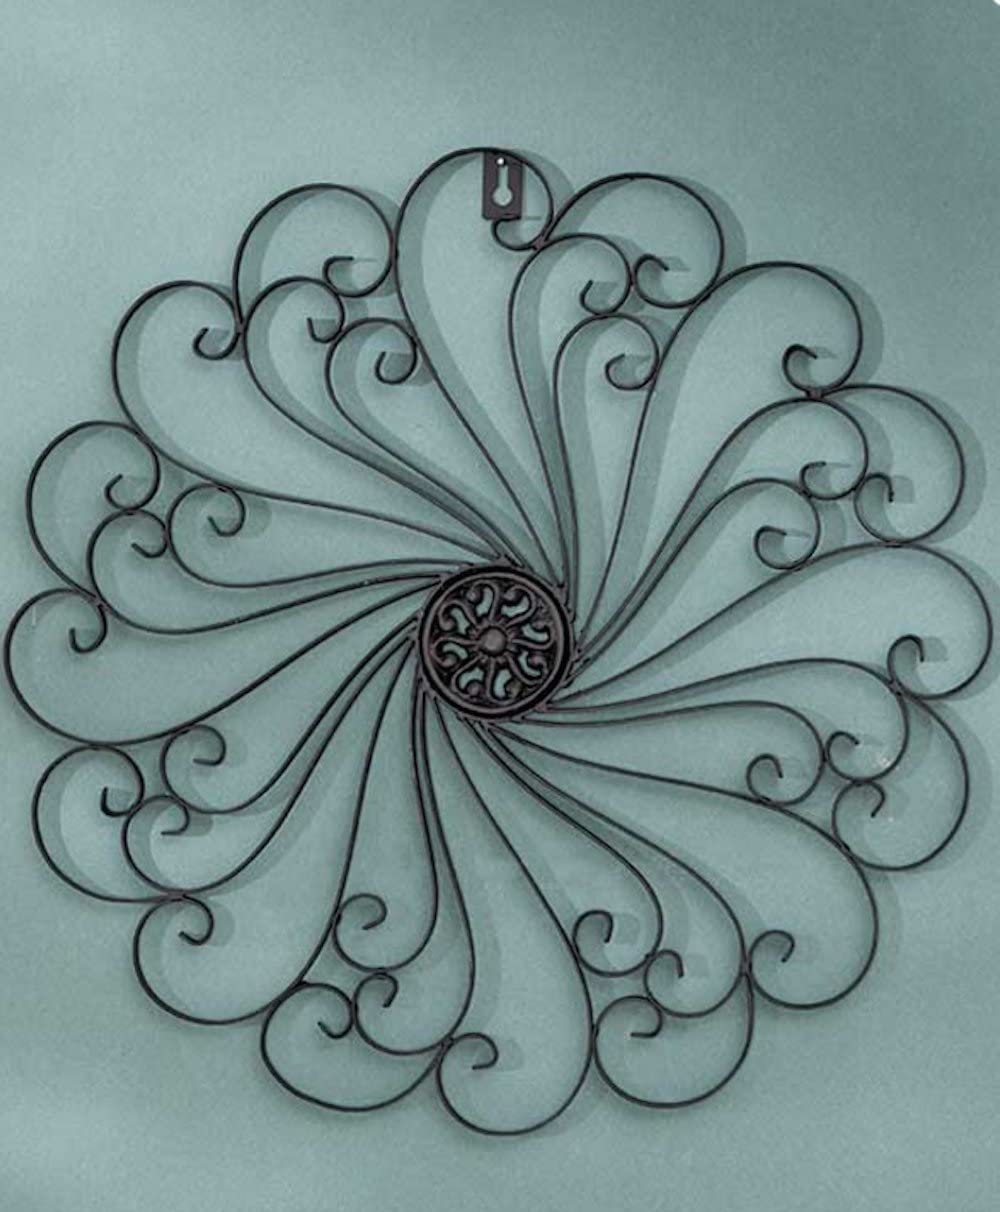 Black Antiqued Finish Iron Wall Medallions Metal Display Hangs Indoors or Porch or Patio Wall Art Decor Home Decorations